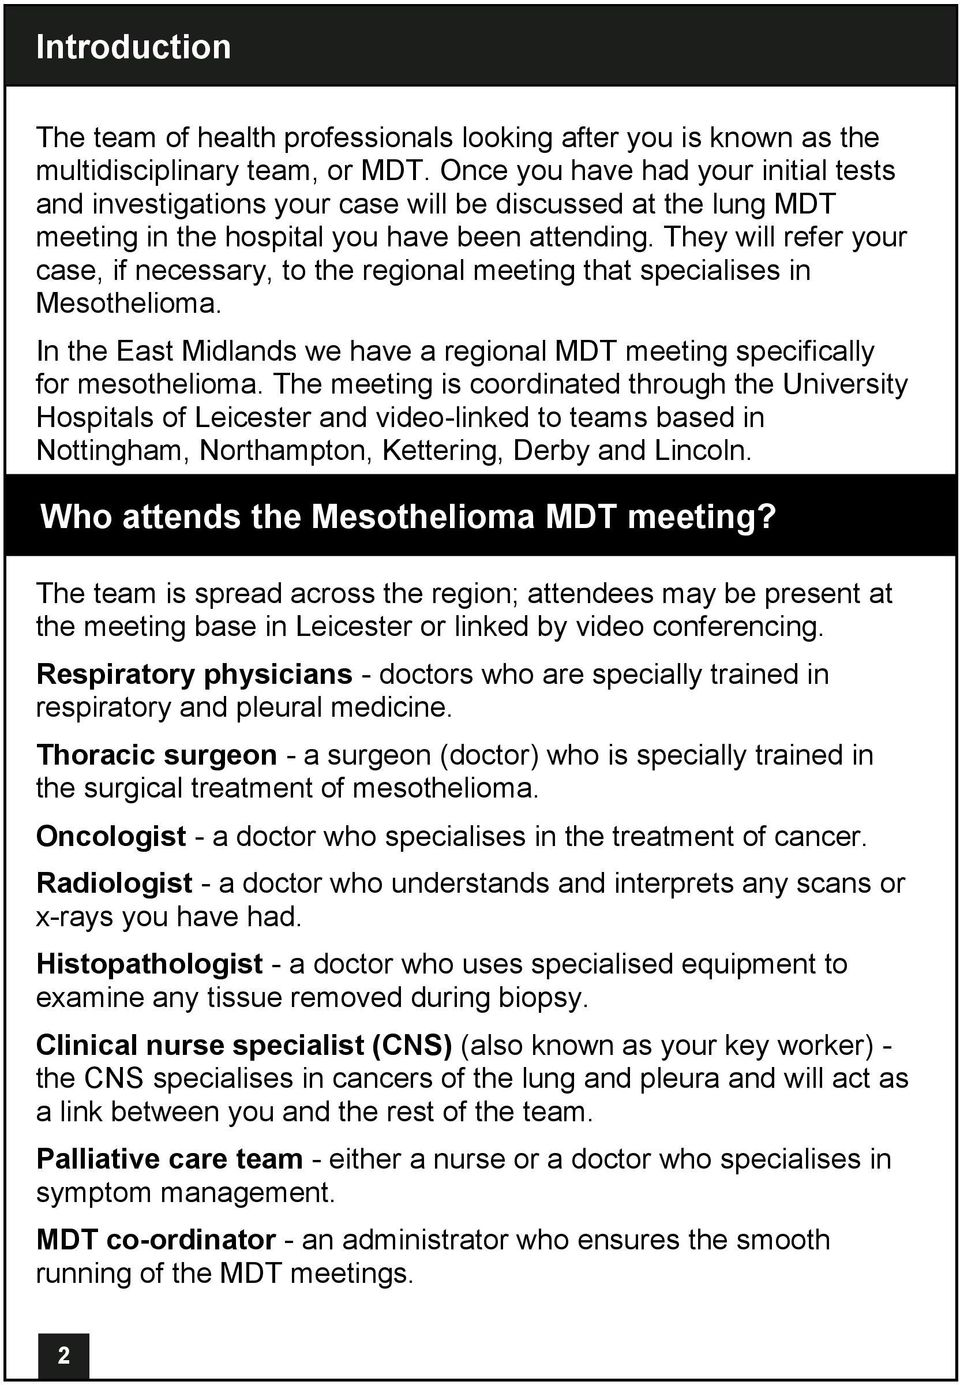 They will refer your case, if necessary, to the regional meeting that specialises in Mesothelioma. In the East Midlands we have a regional MDT meeting specifically for mesothelioma.